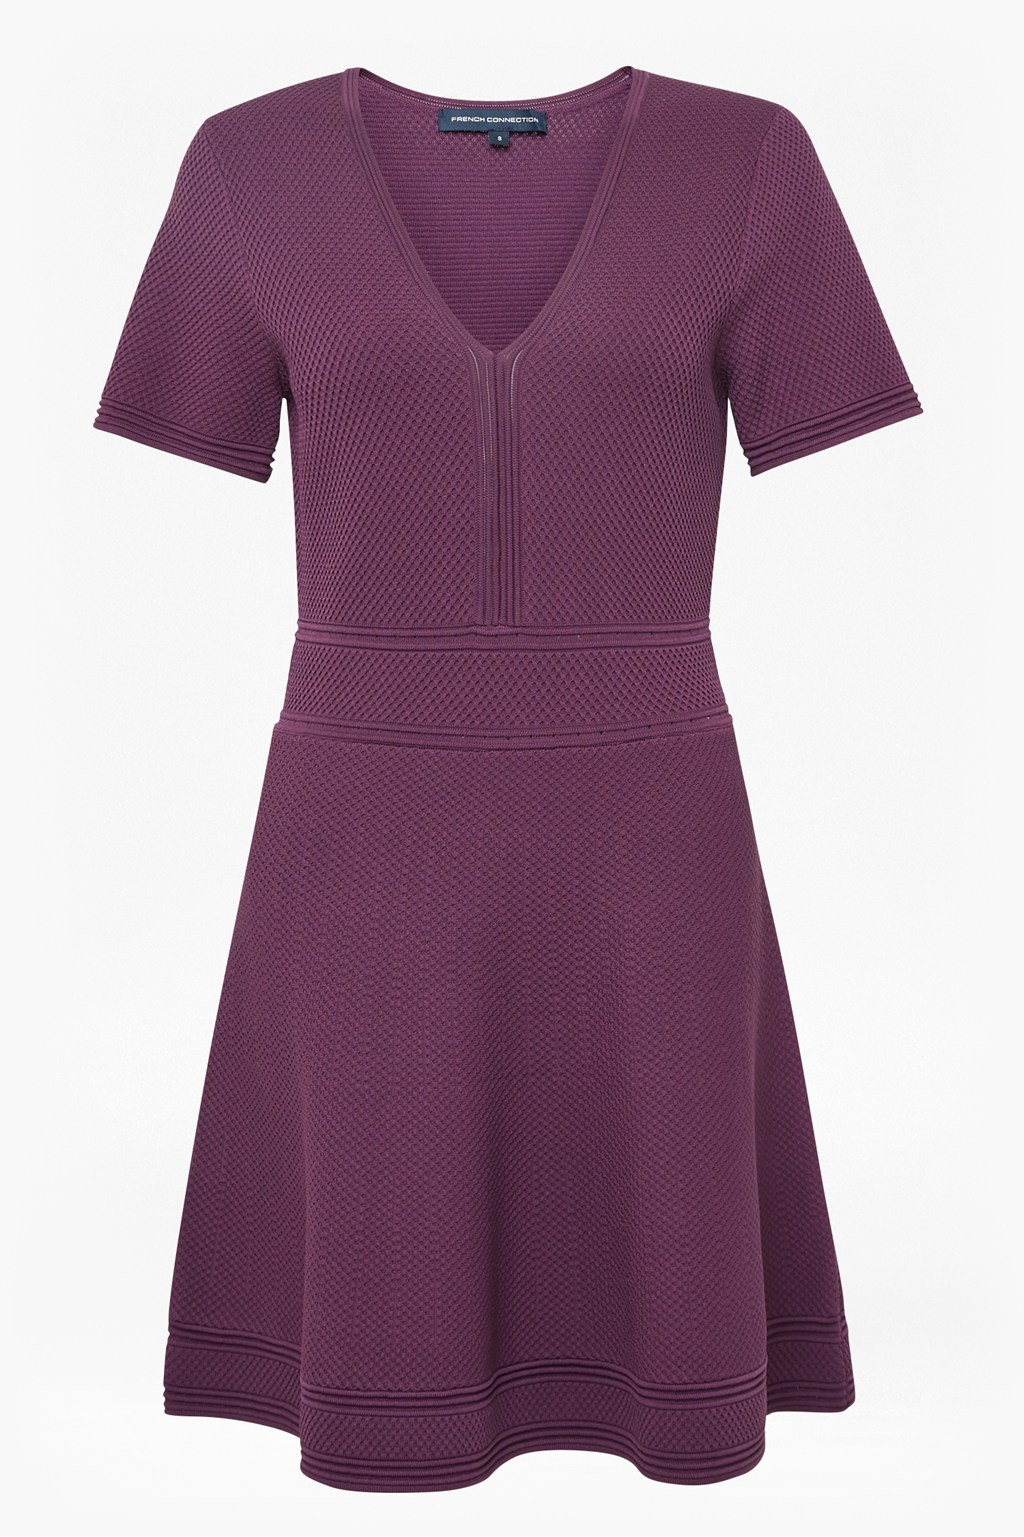 5672268fb59 Ellie Knit Fit And Flare Dress Imported French Connection